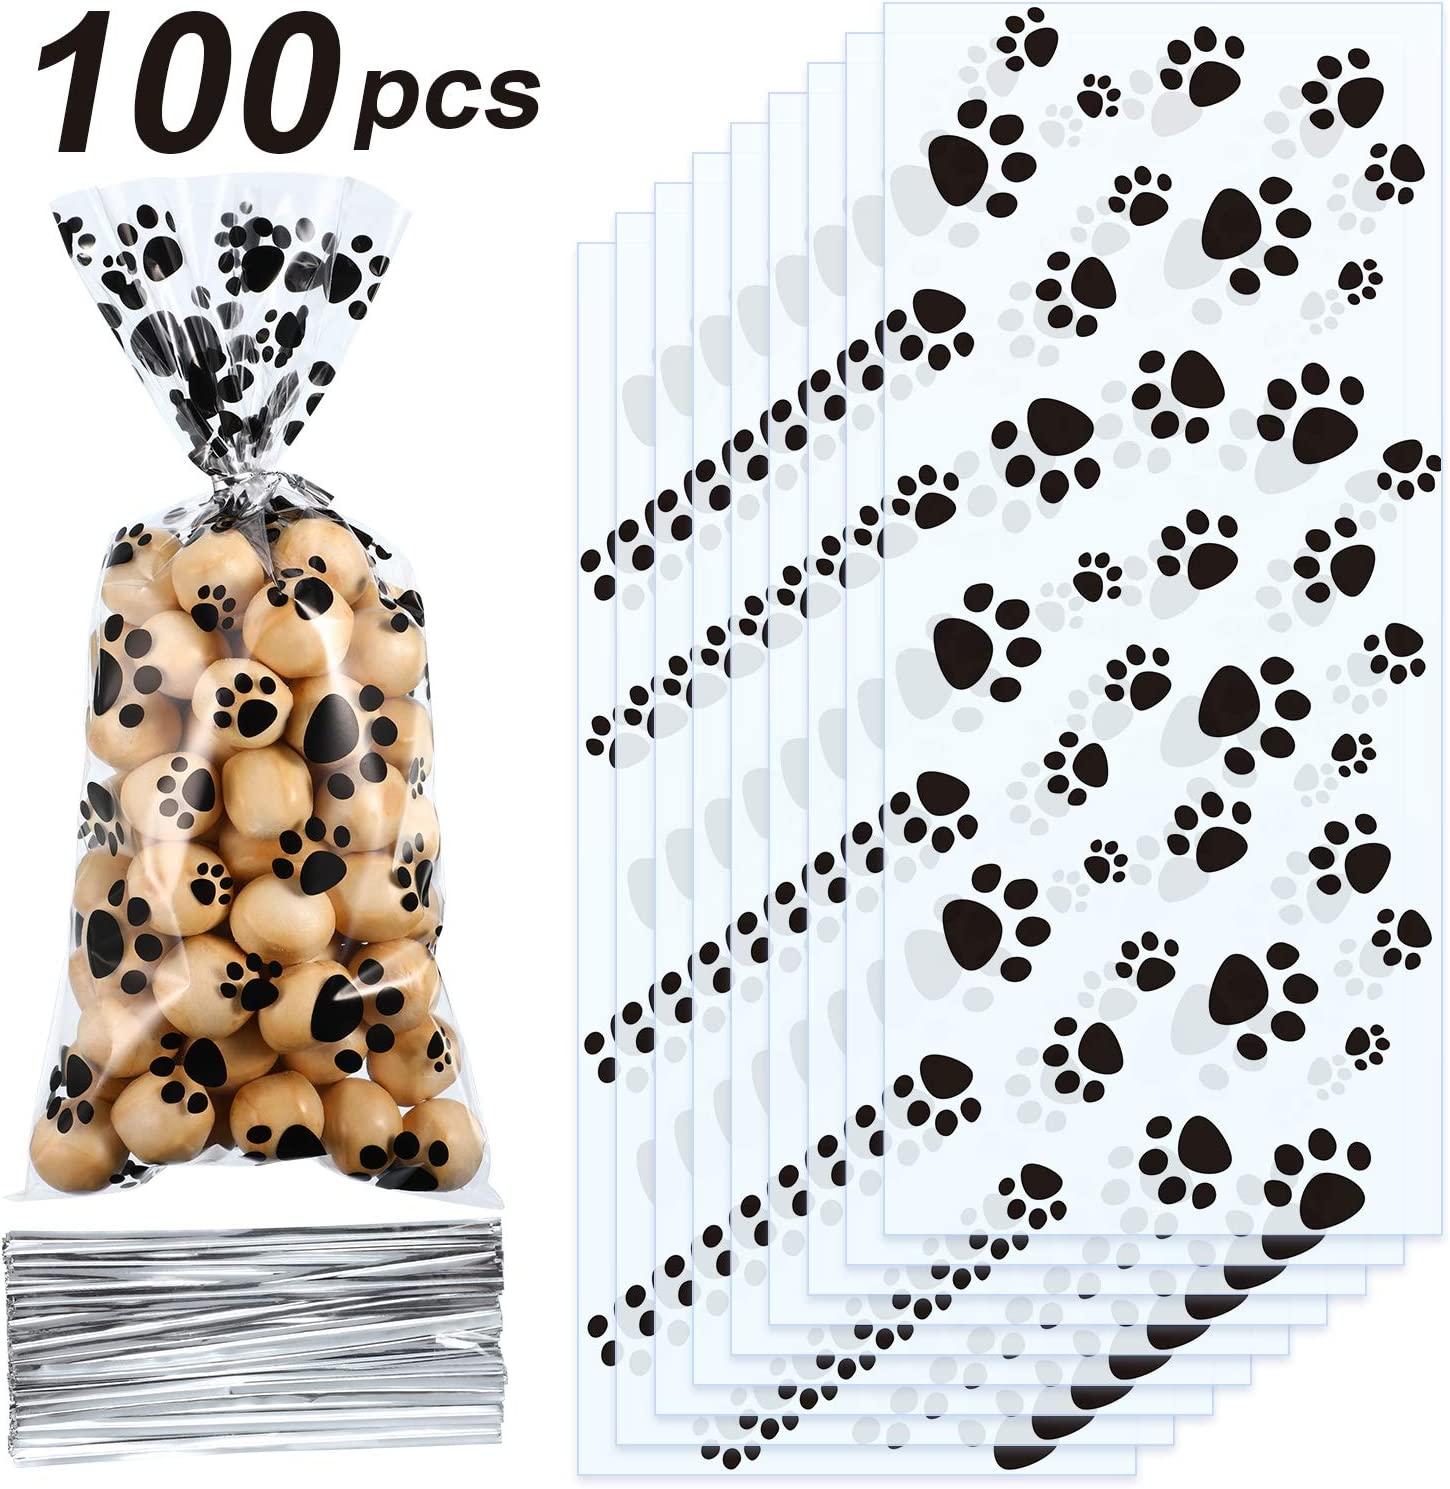 Blulu Pet Paw Print Cone Cellophane Bags Heat Sealable Treat Candy Bags Dog Gift Bags Cat Treat Bags with 100 Pieces Silver Twist Ties for Pet Treat Party Favor